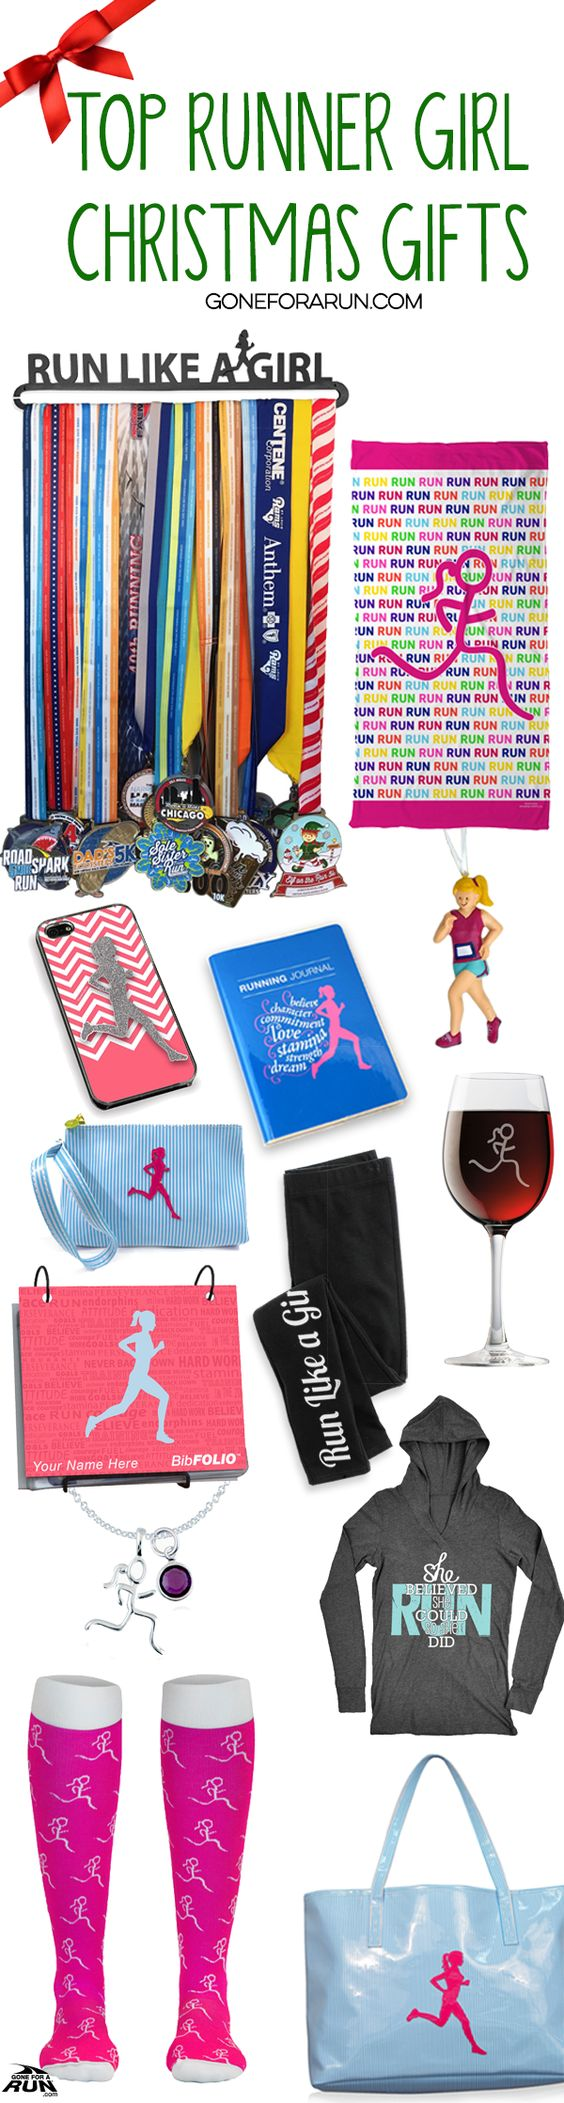 If you're a runner girl and proud of it, you won't want to miss our awesome collection of Runner Girl gear! Stay cozy with a nice pair of leggings and a performance hoodie, or go to the beach with a towel and our Kali tote bag! Whatever suits your fancy, get it here at GoneForARUN.com